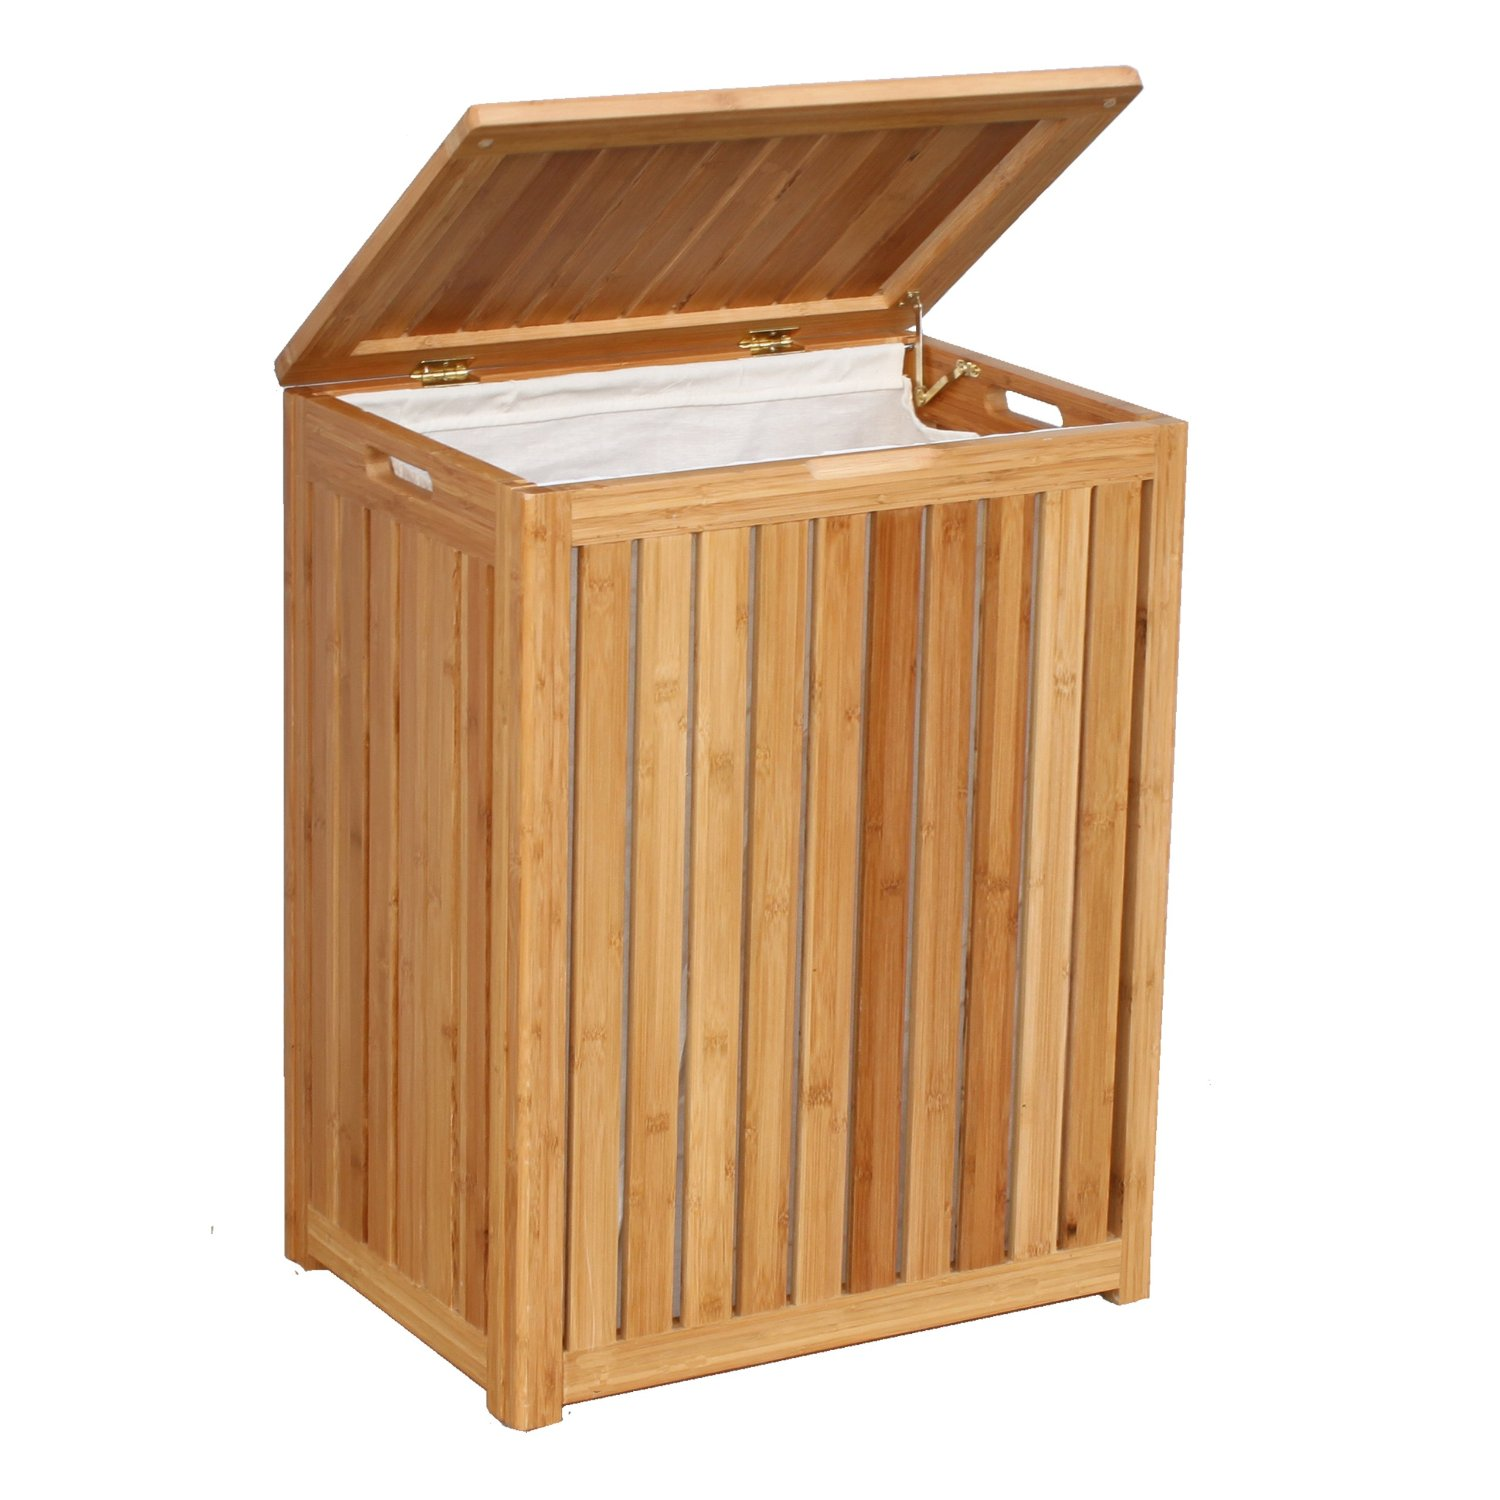 Bamboo Lamp Photo Bamboo Laundry Hamper